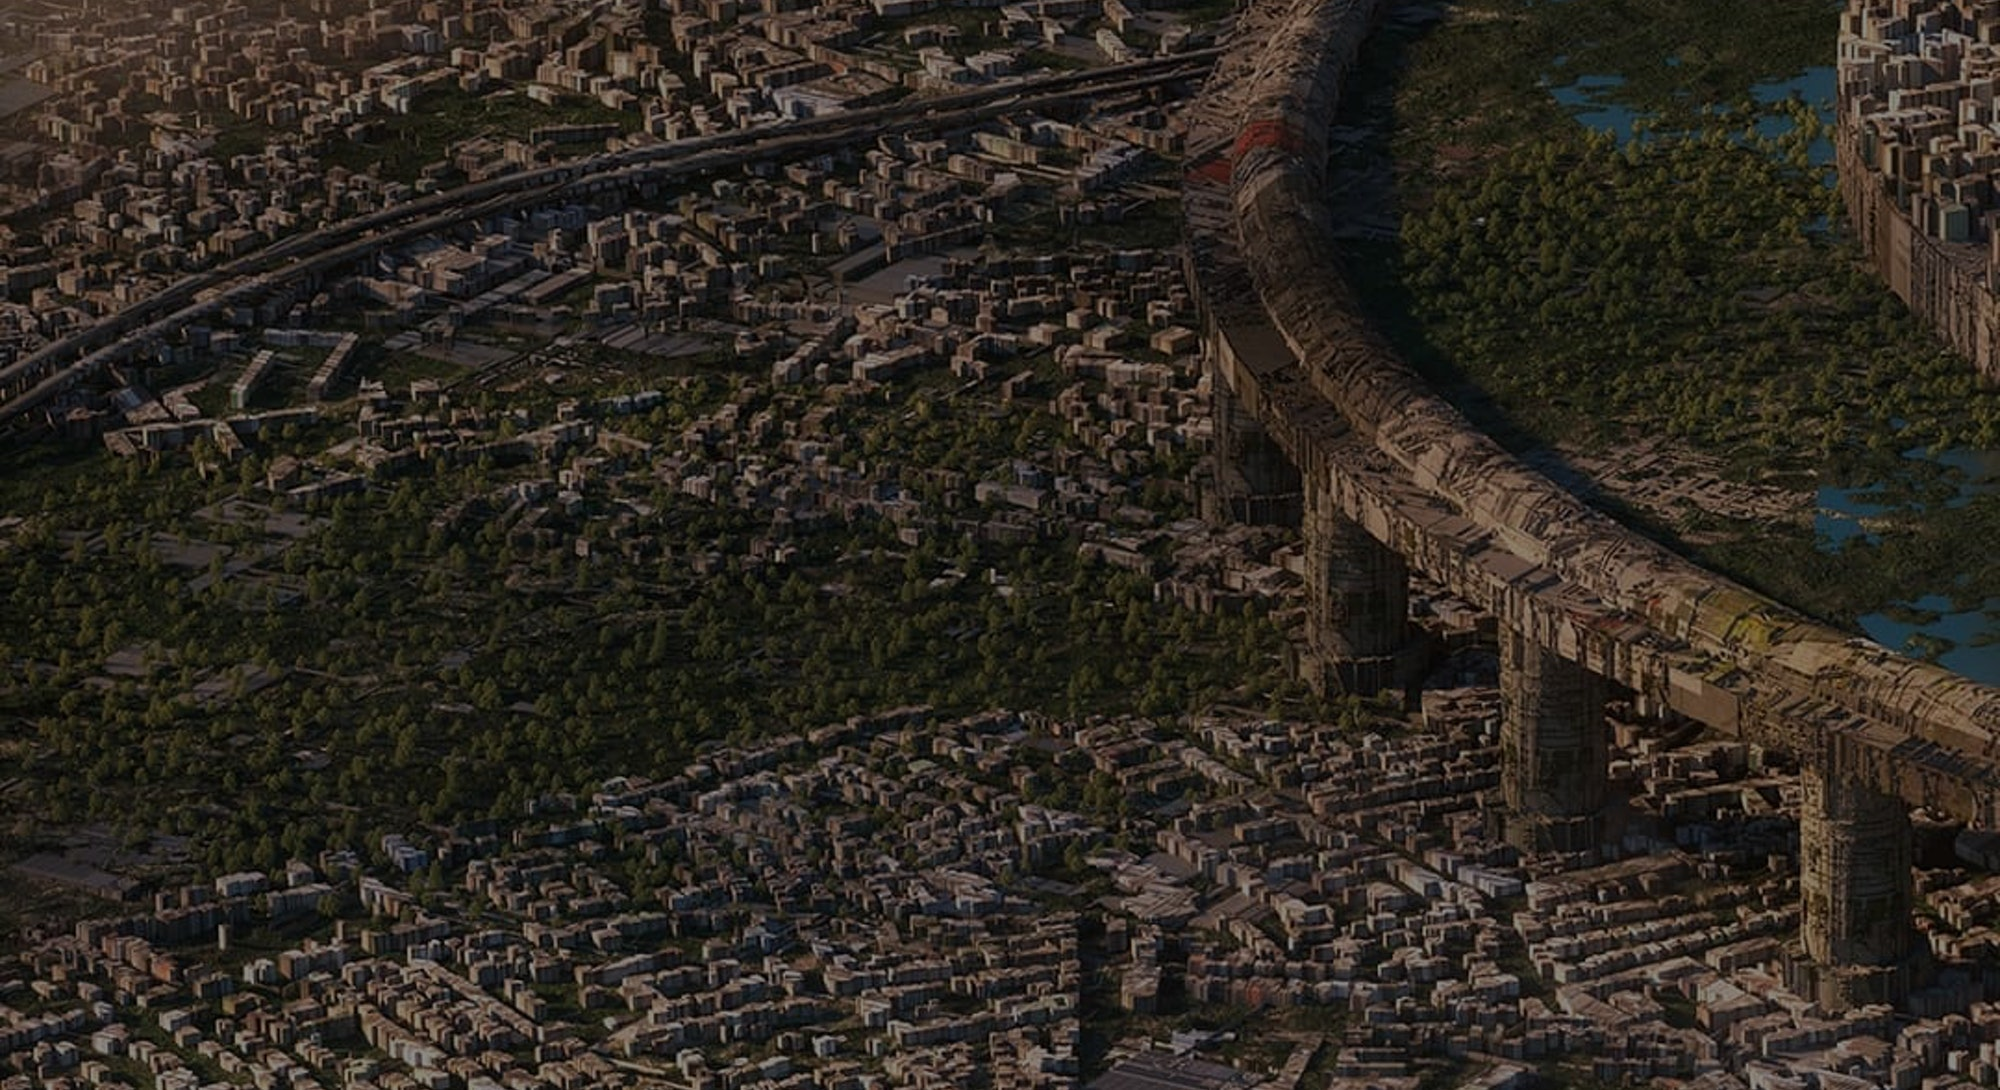 Graphic artist InwardSound creates detailed rendering of a city.